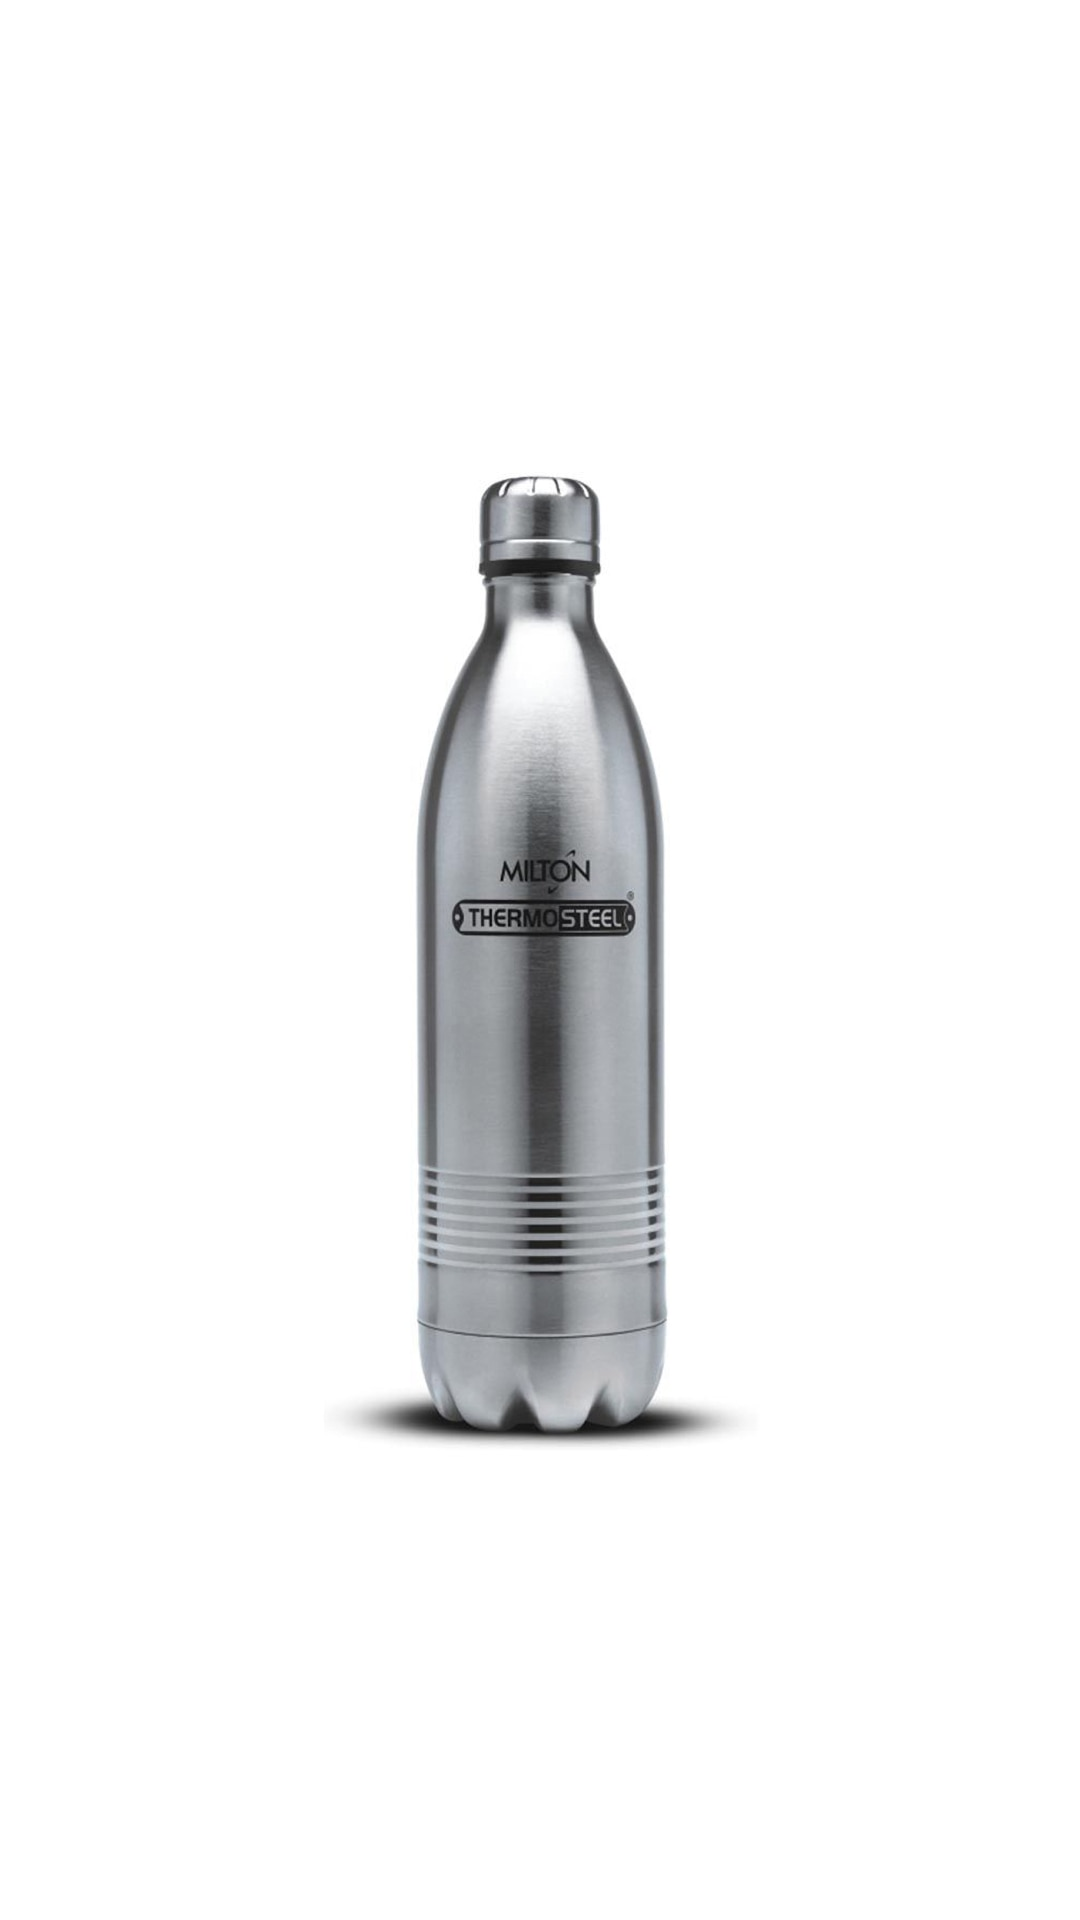 Milton Thermosteel Duo DLX 24Hour Hot & Cold Bottle;1-Piece;